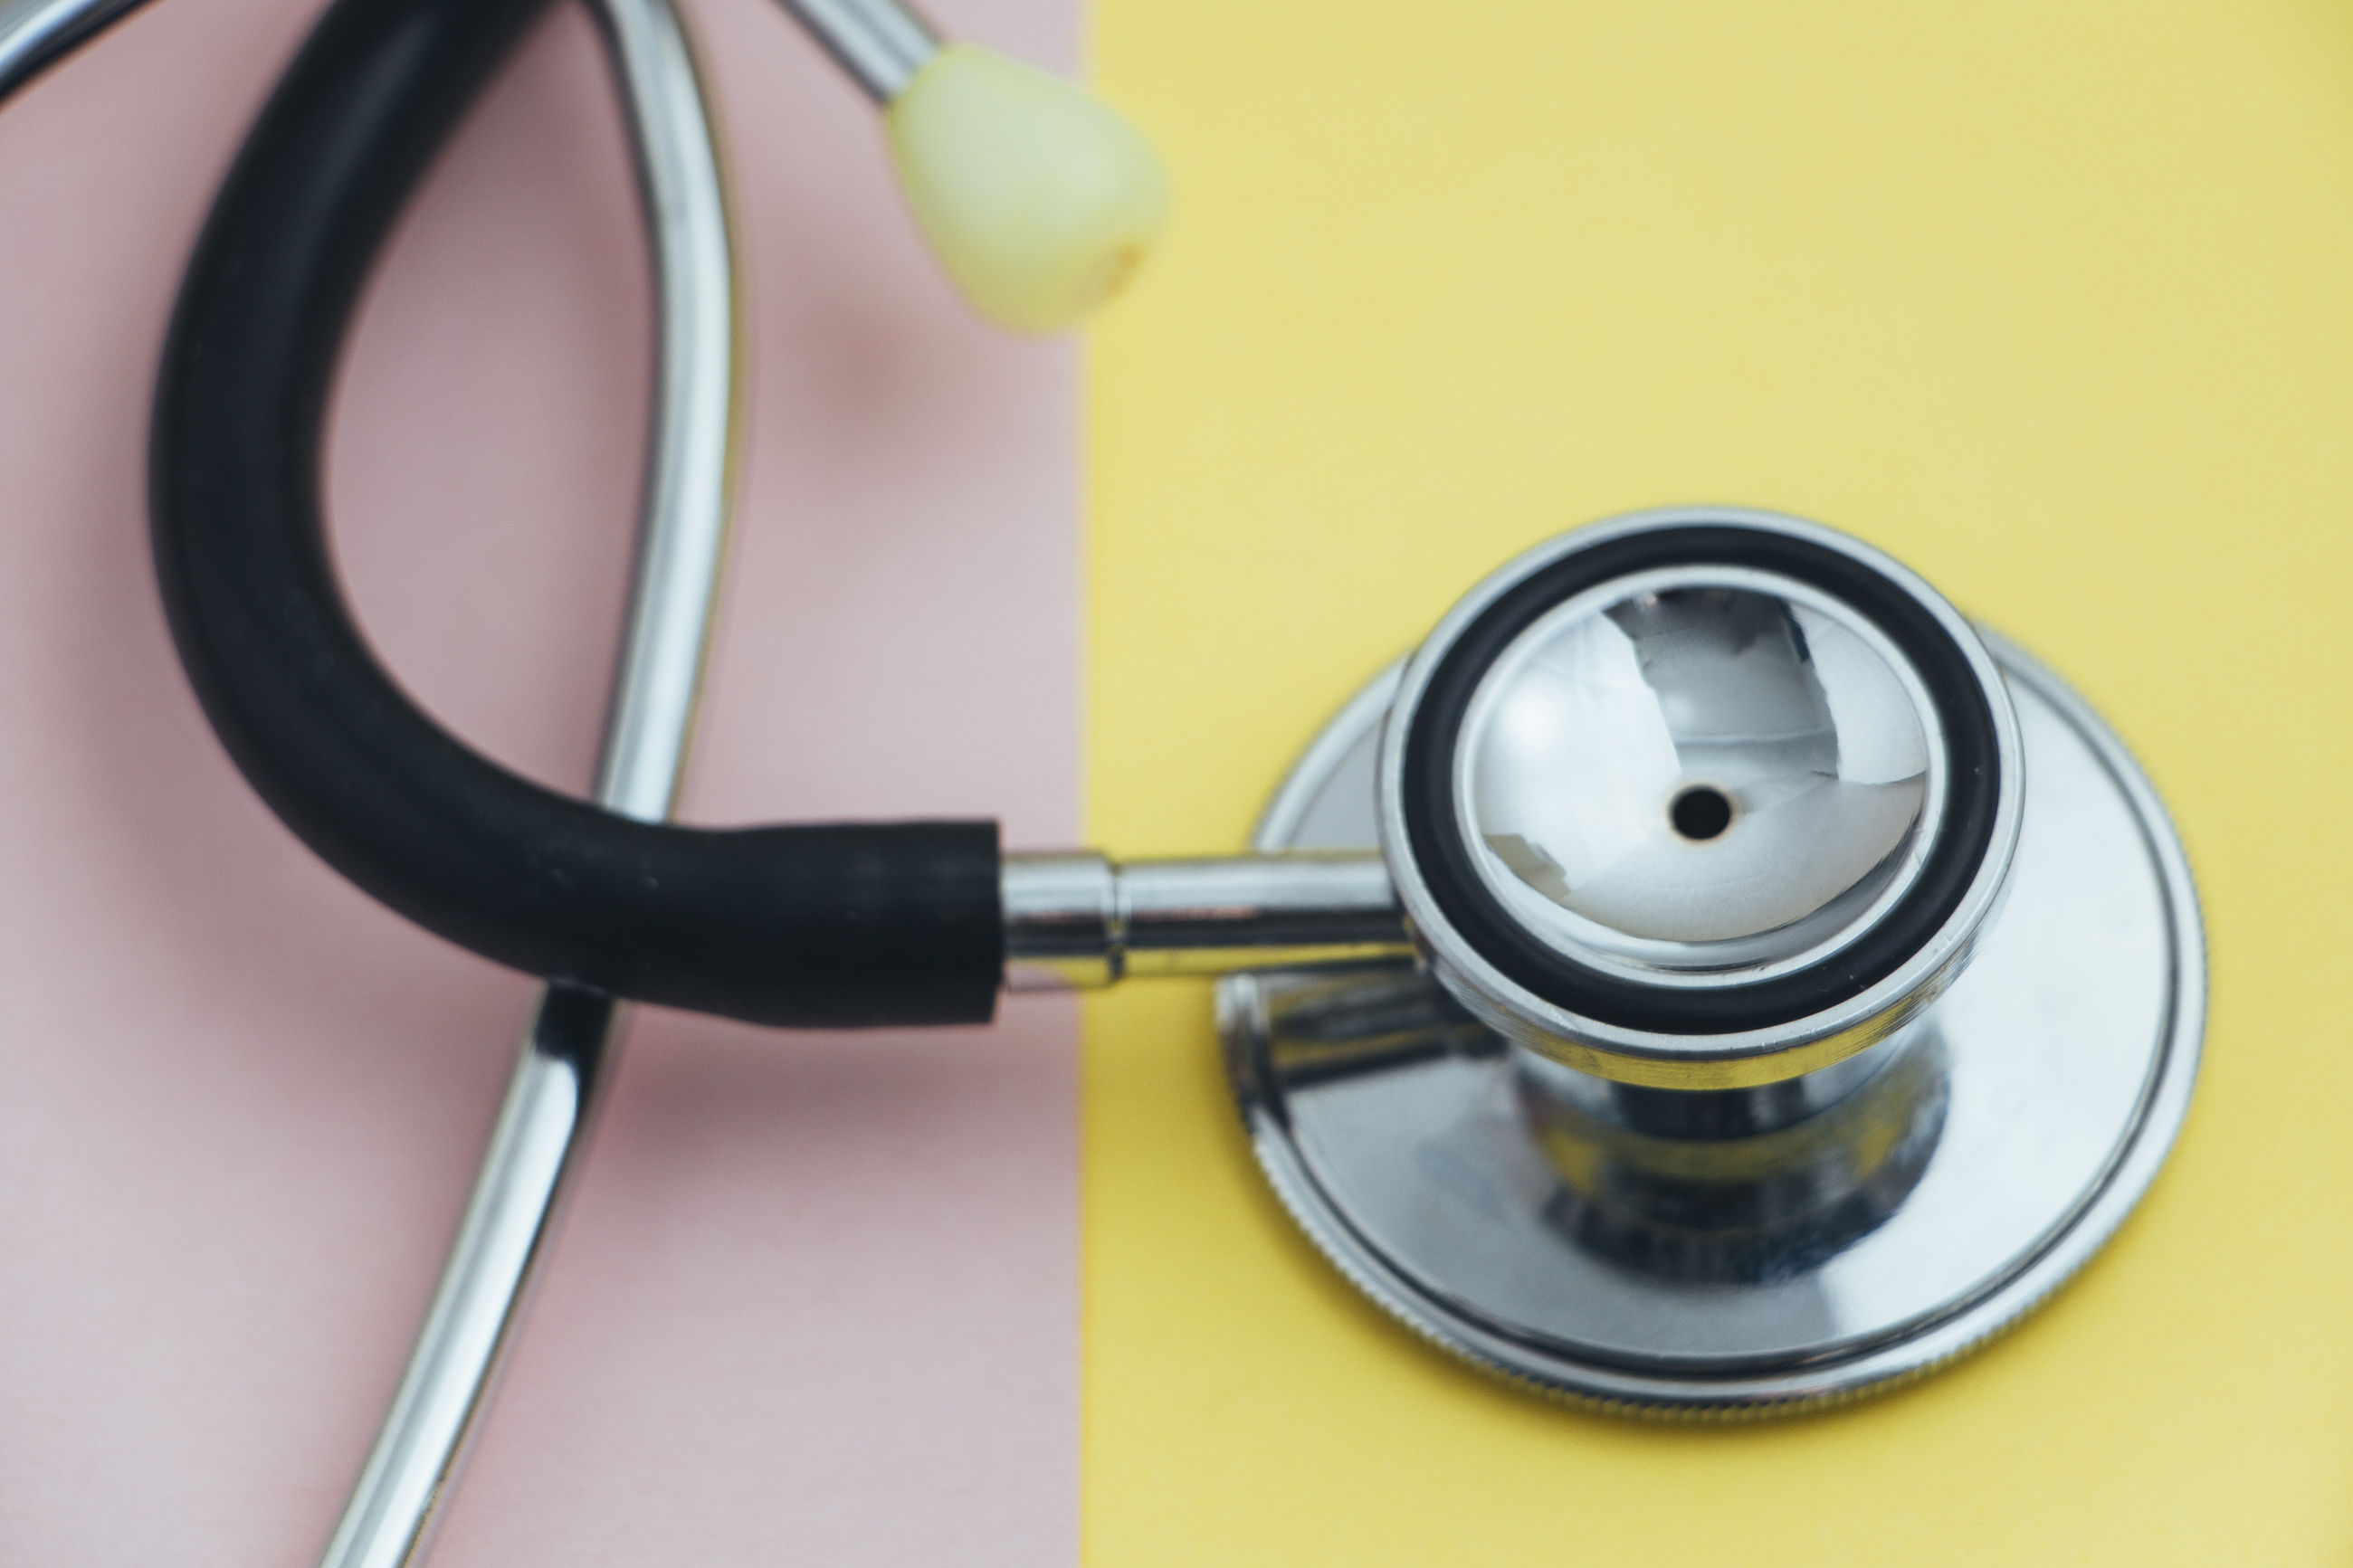 Close-up of stethoscope against colored background